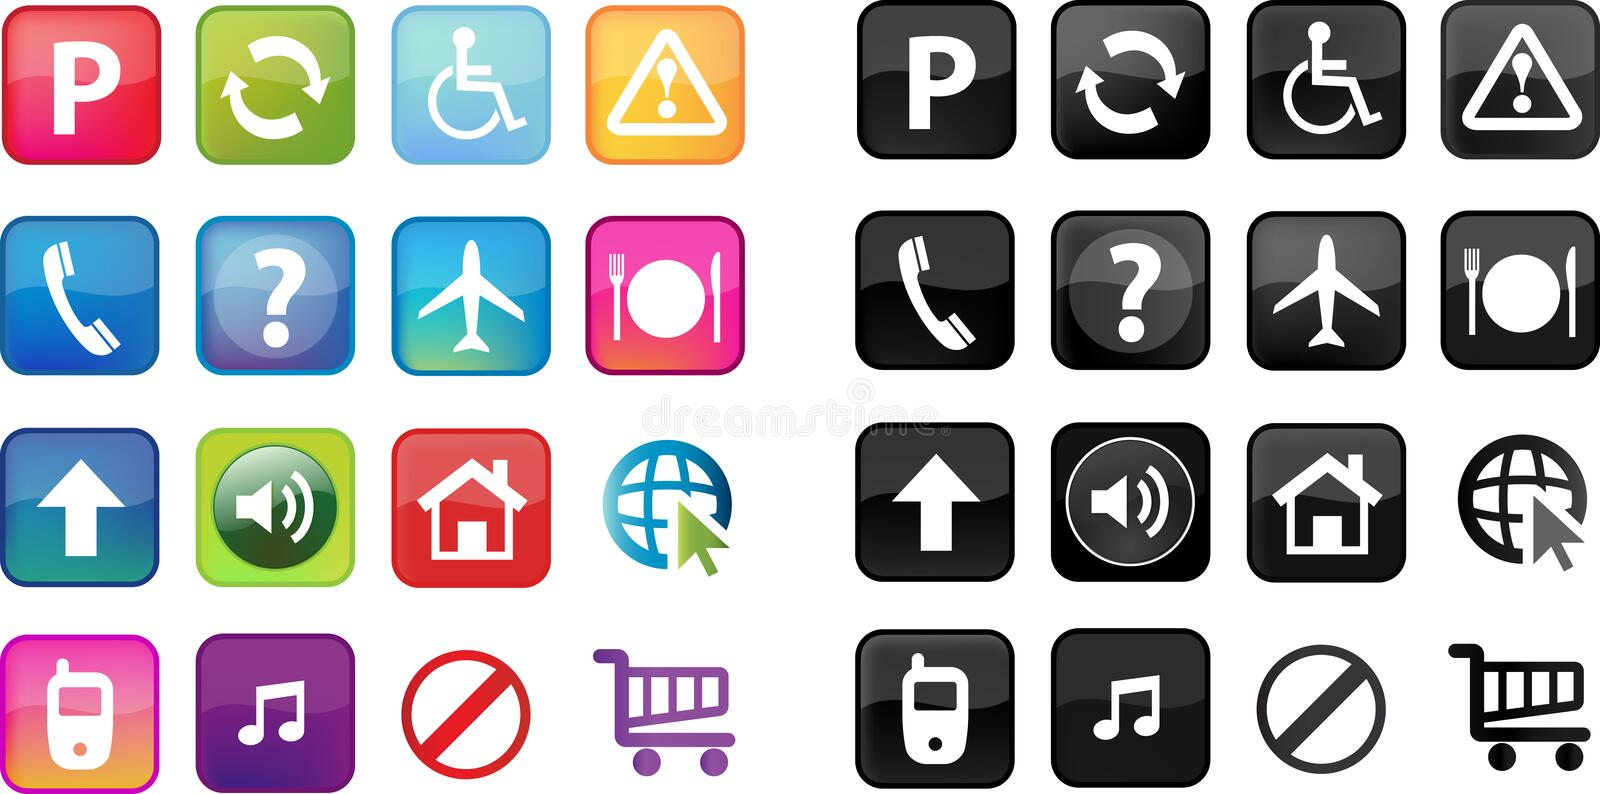 Download Web Buttons Royalty Free Stock Image - Image: 16805466